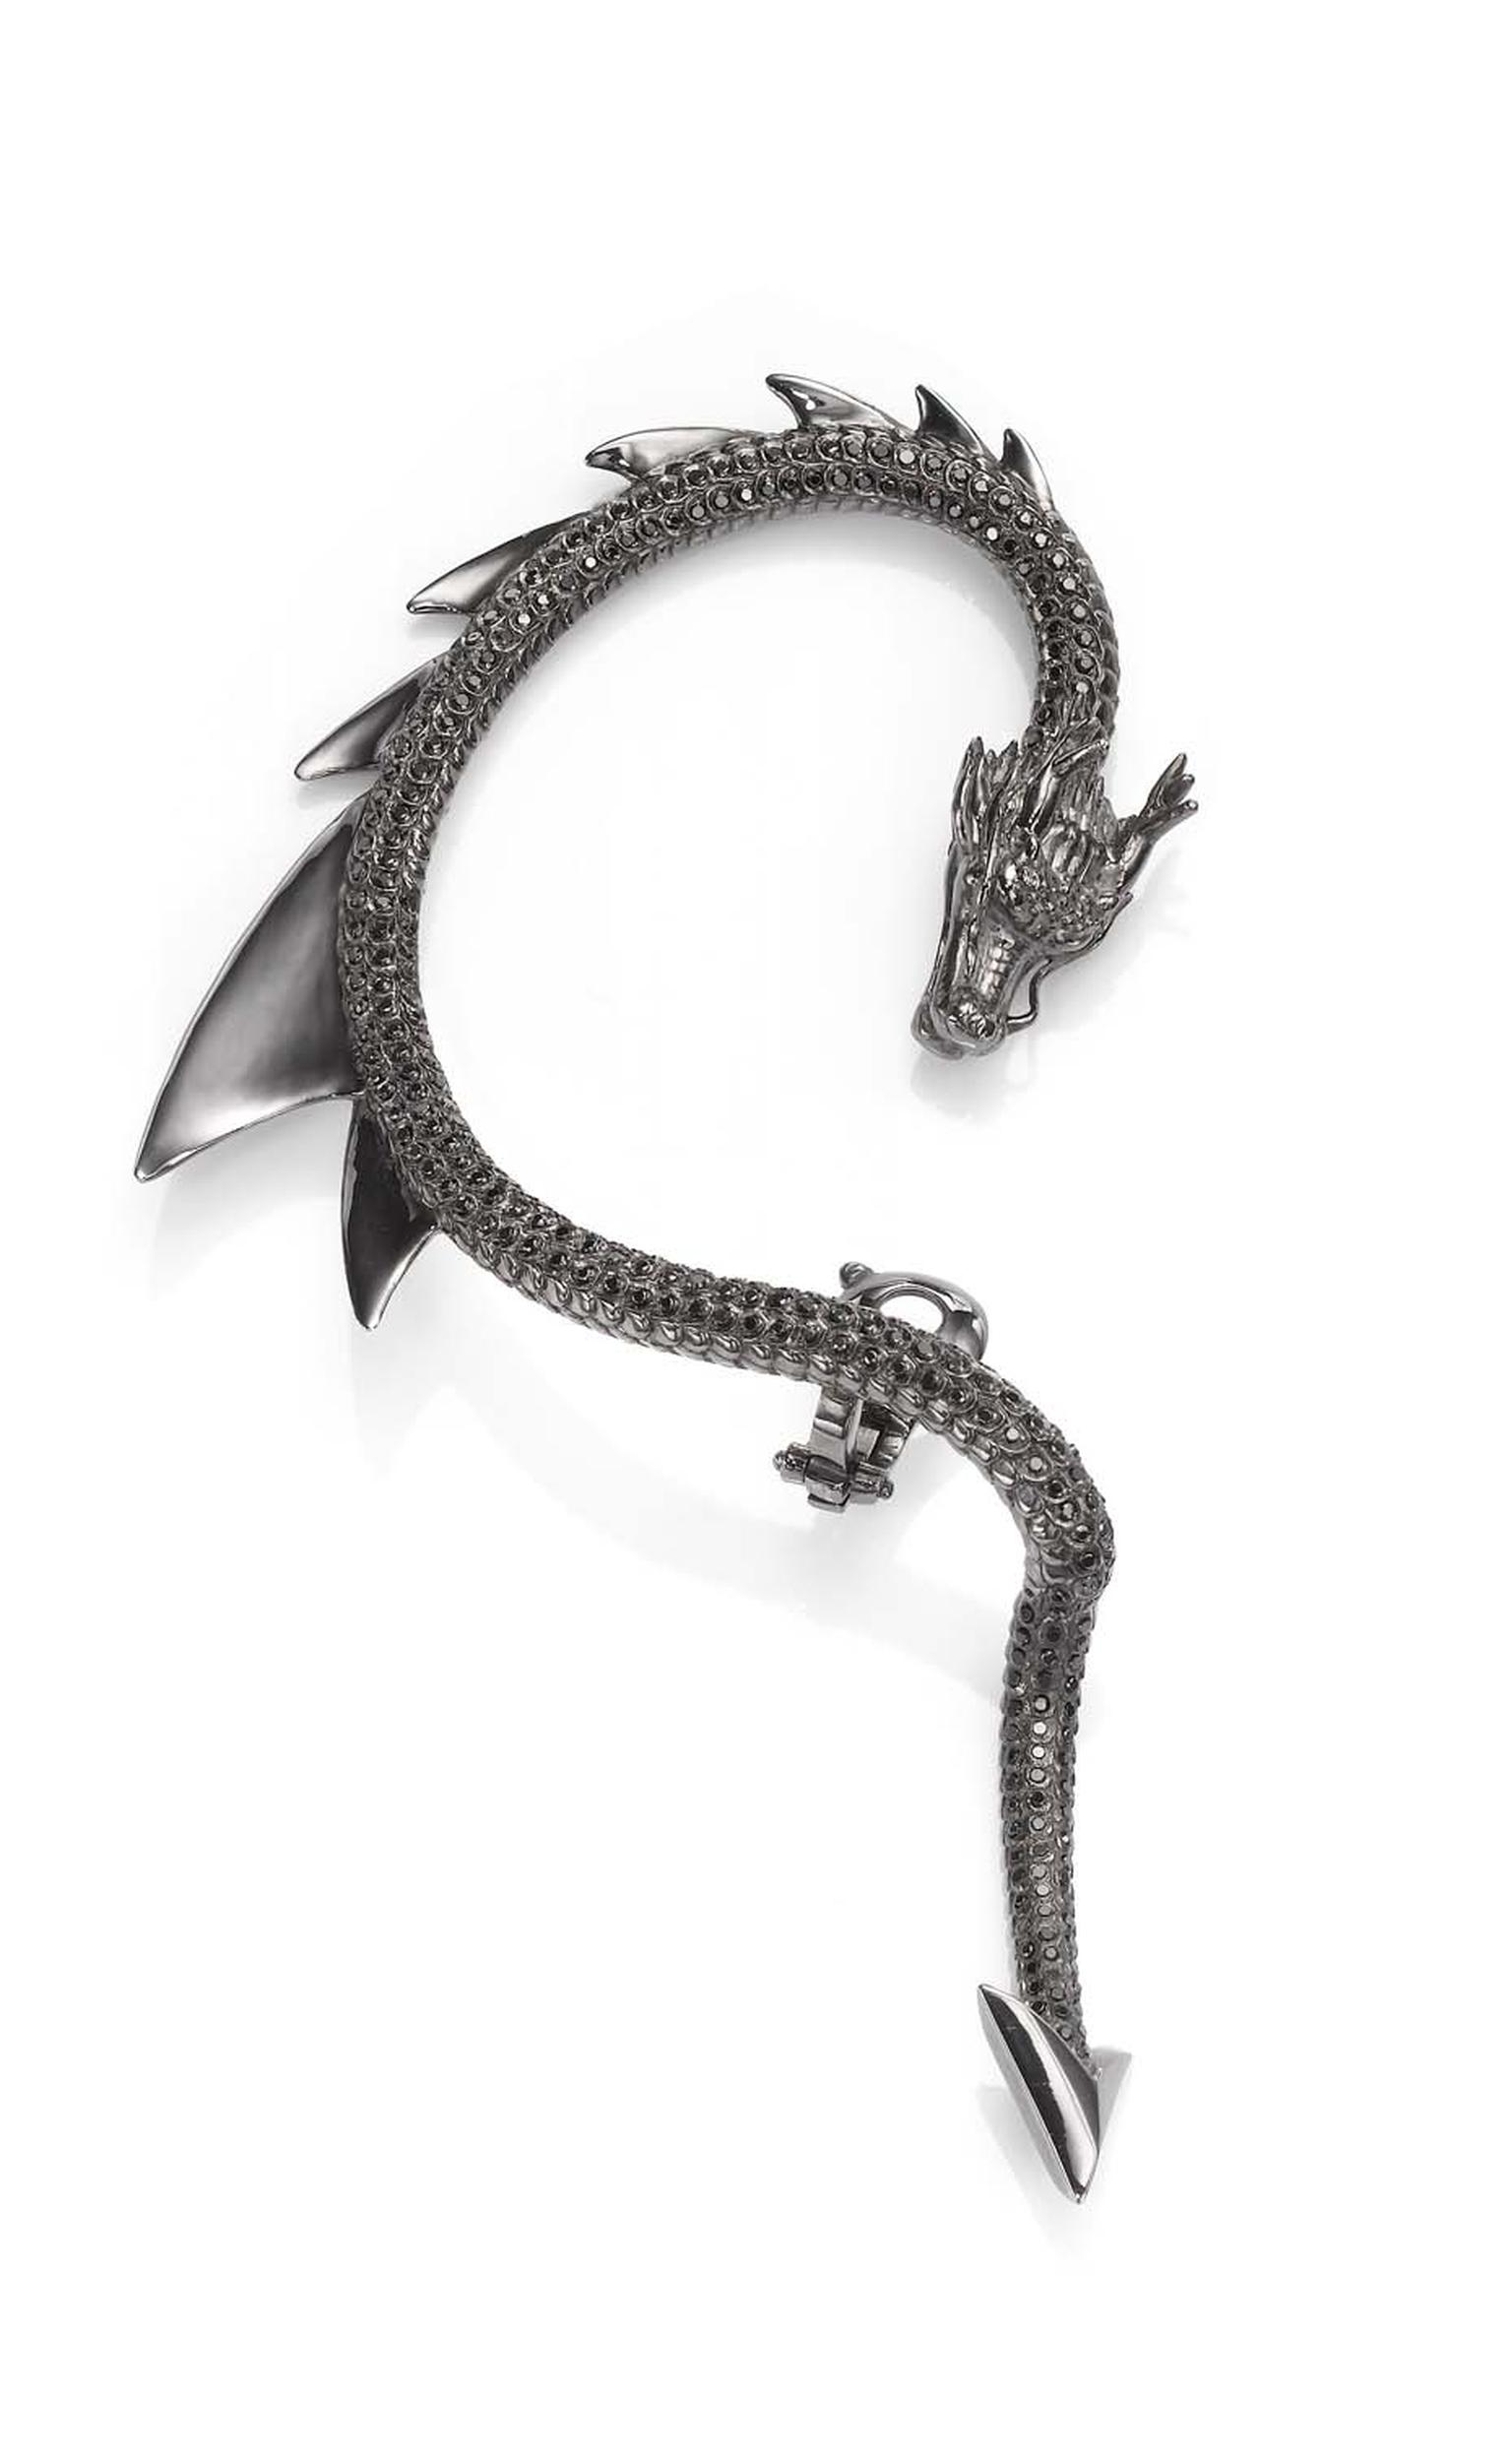 Crow's Nest Maleficent Collection Dragon ear cuff set in rhodium with black diamonds